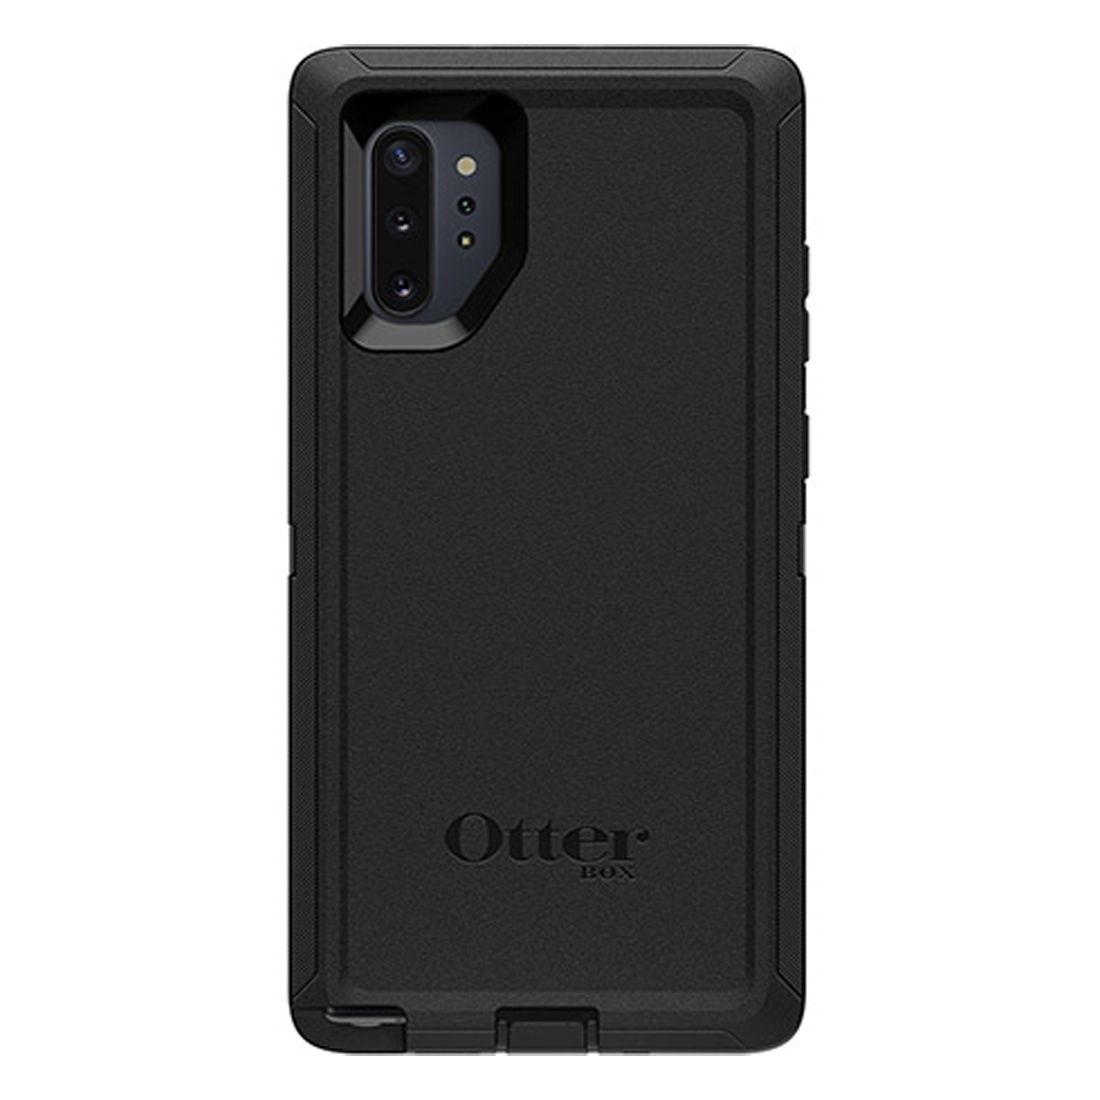 Otterbox Defender Case For Samsung Galaxy Note 10+ Plus - Black